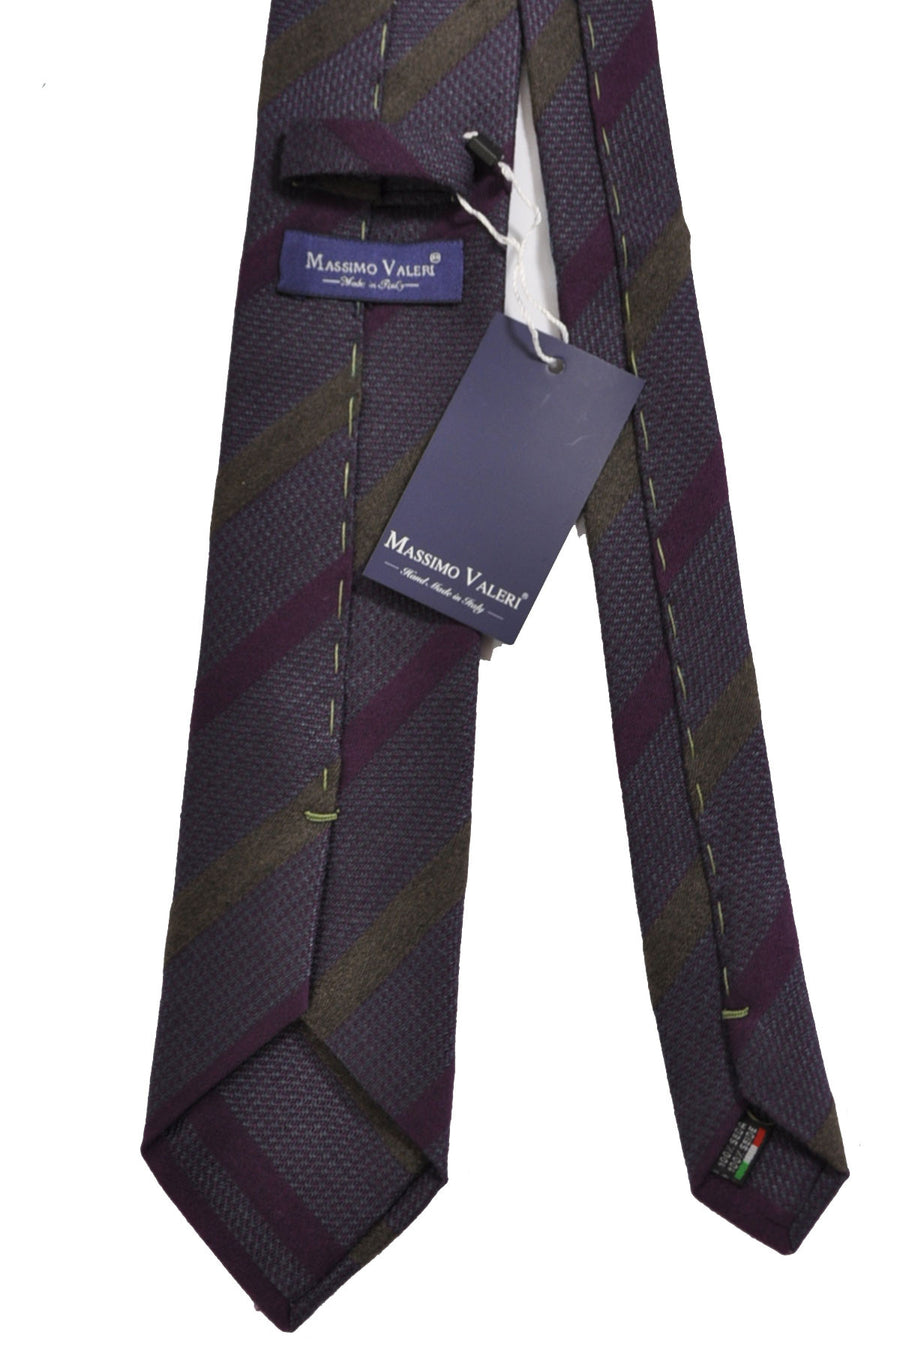 Massimo Valeri Extra Long Tie Purple Olive Stripe